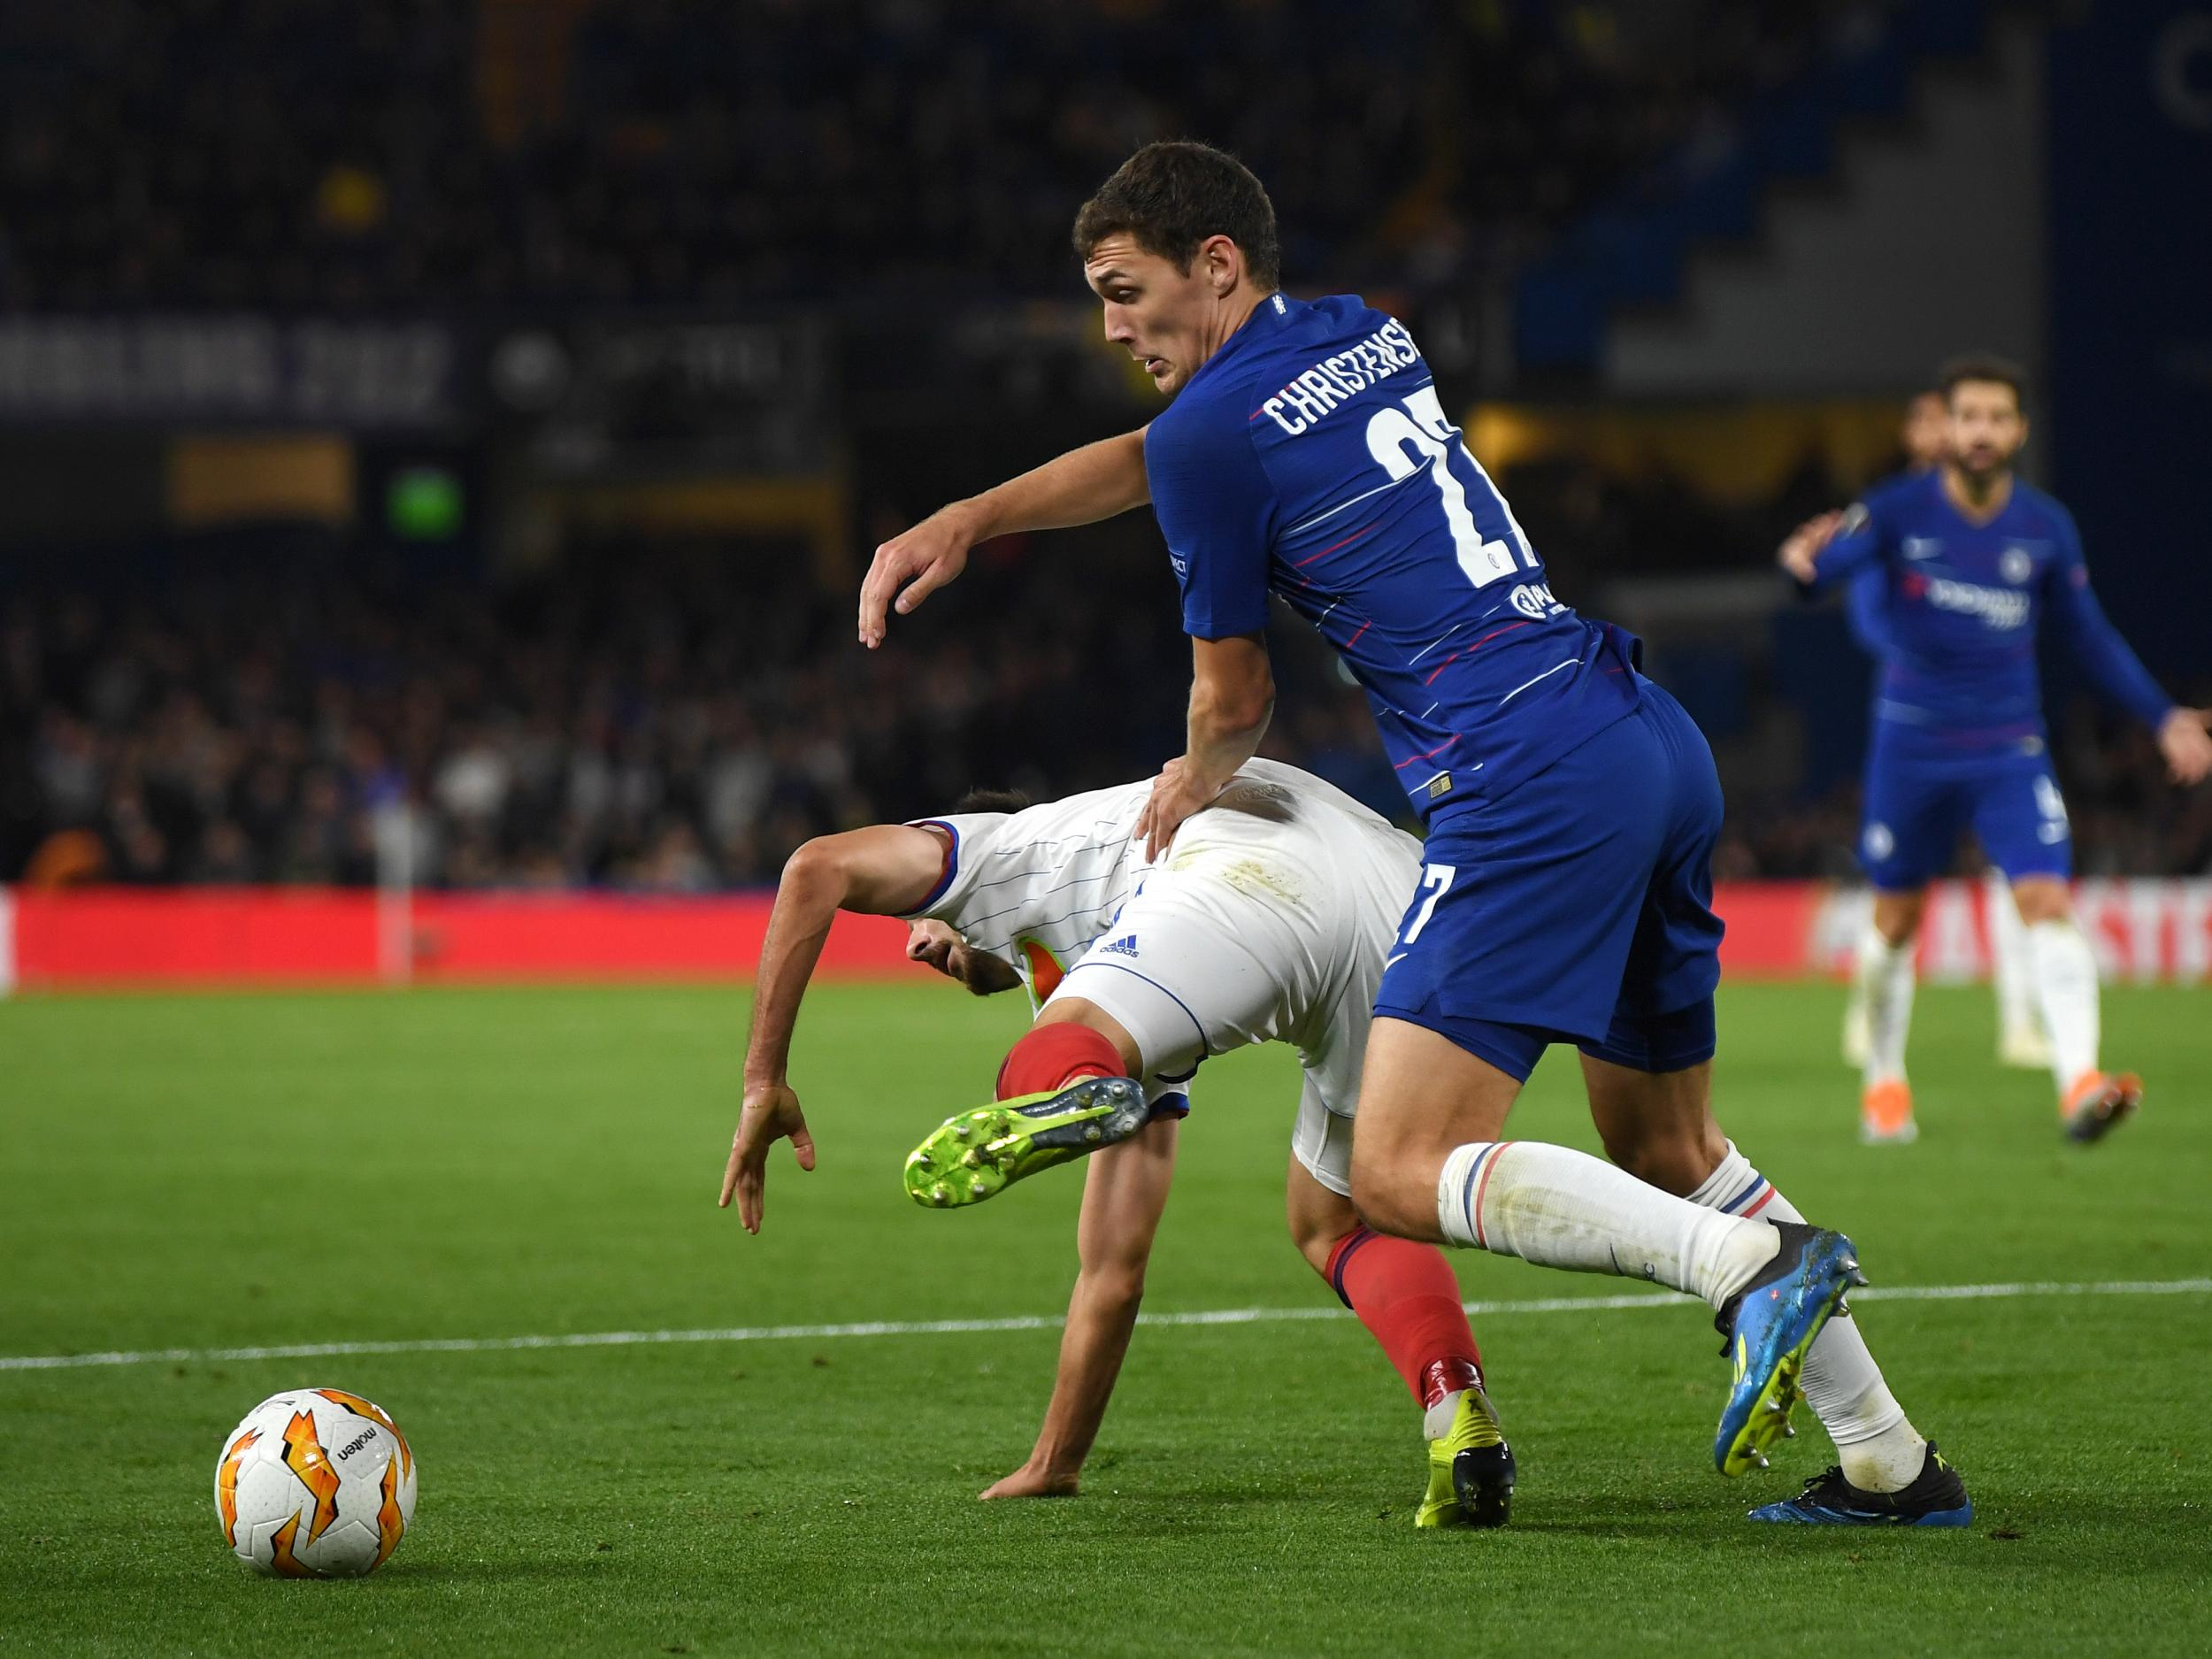 Andreas Christensen will leave Chelsea in January if game time does not increase, says father